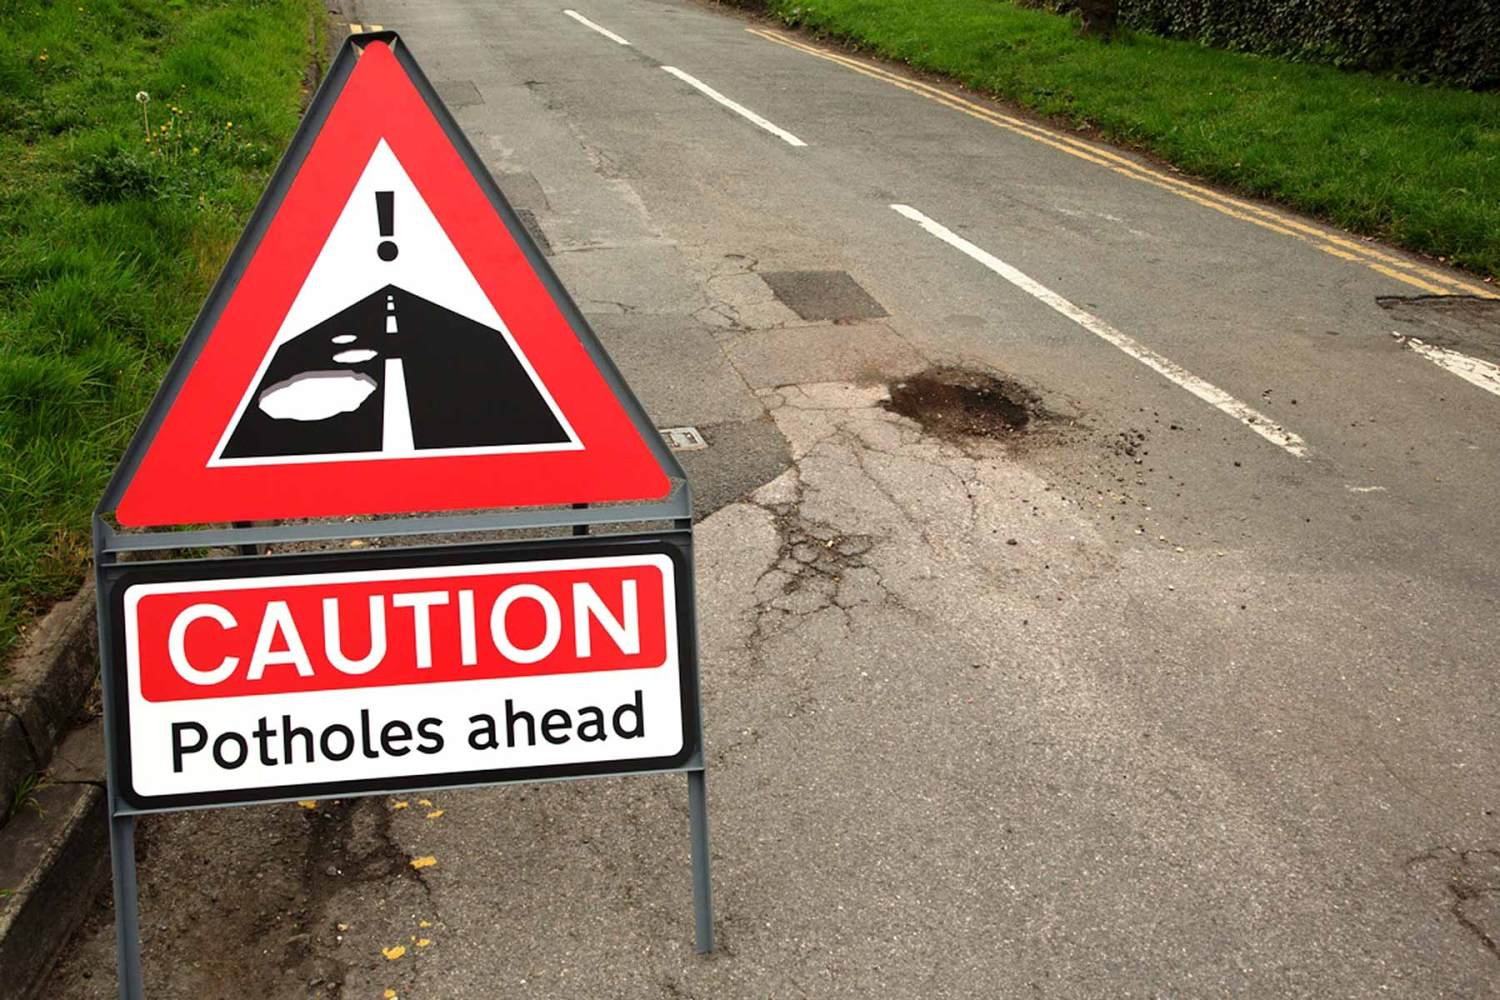 Potholes warning sign